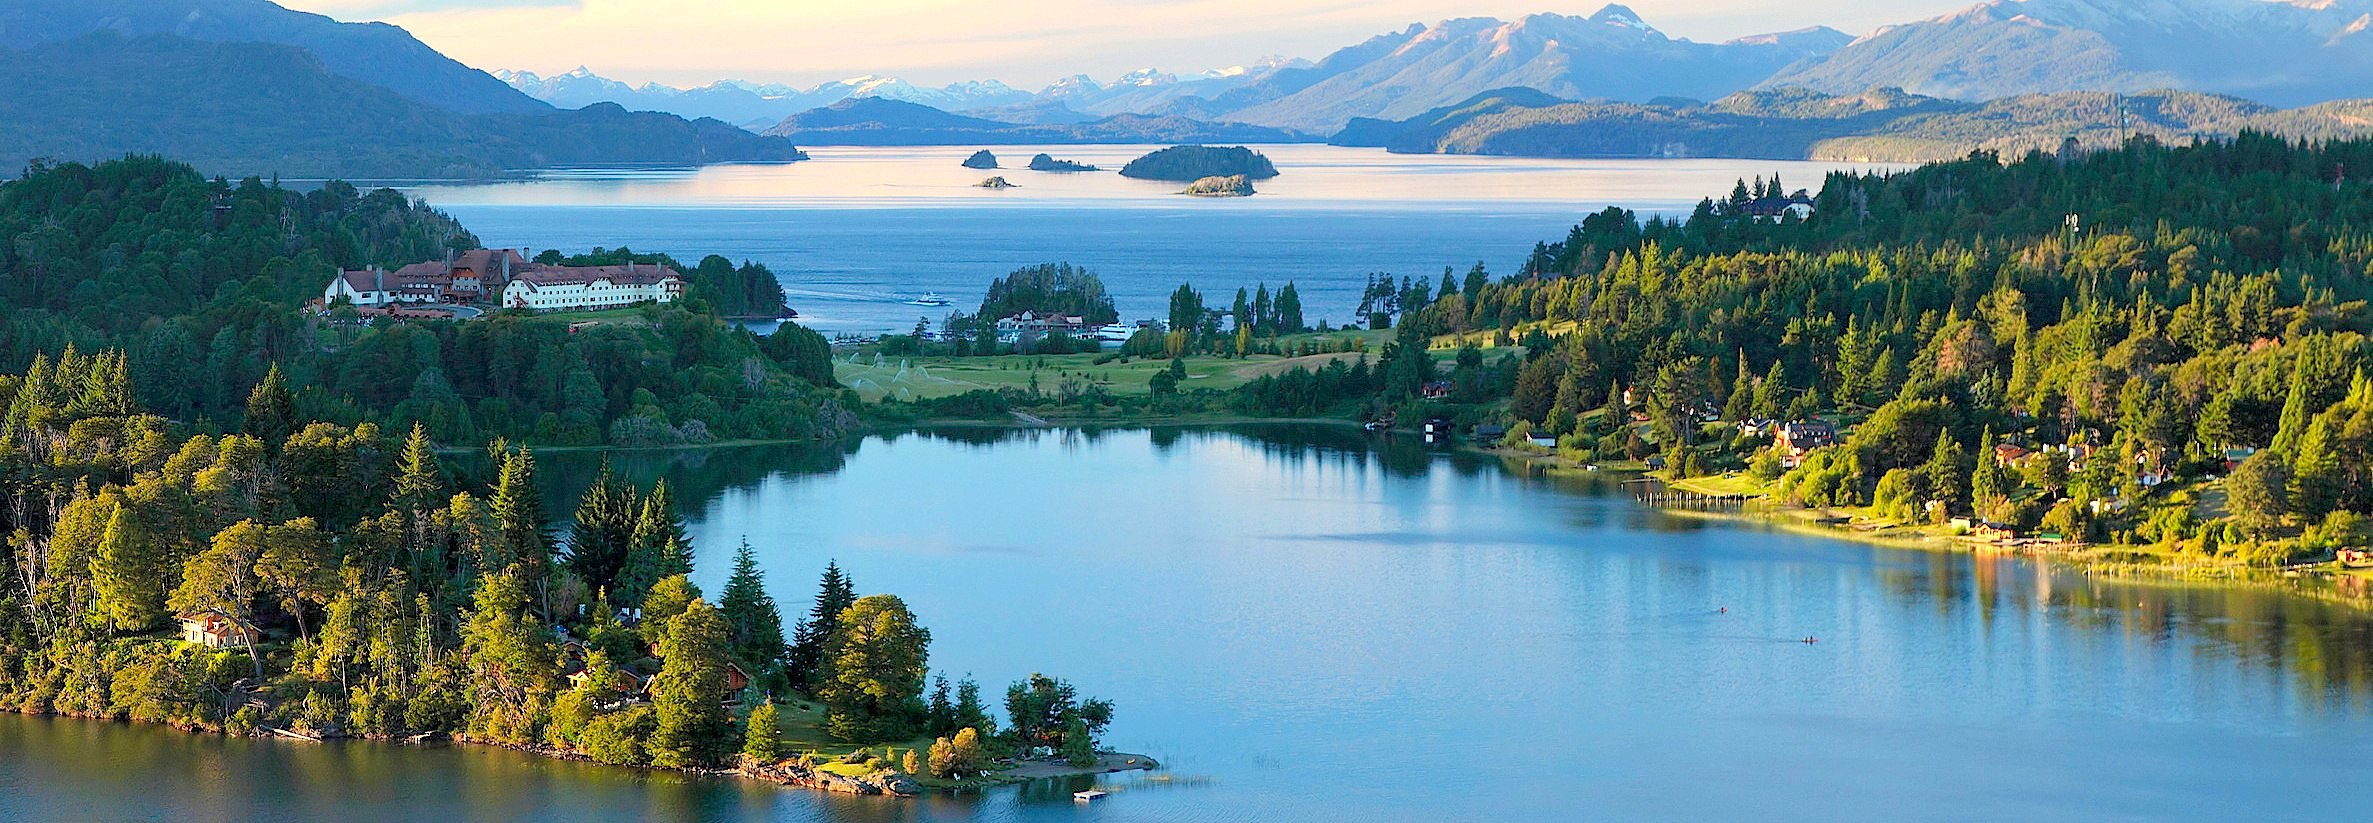 Argentina Tour - Stunning Views of El Circuito Chico in Bariloche